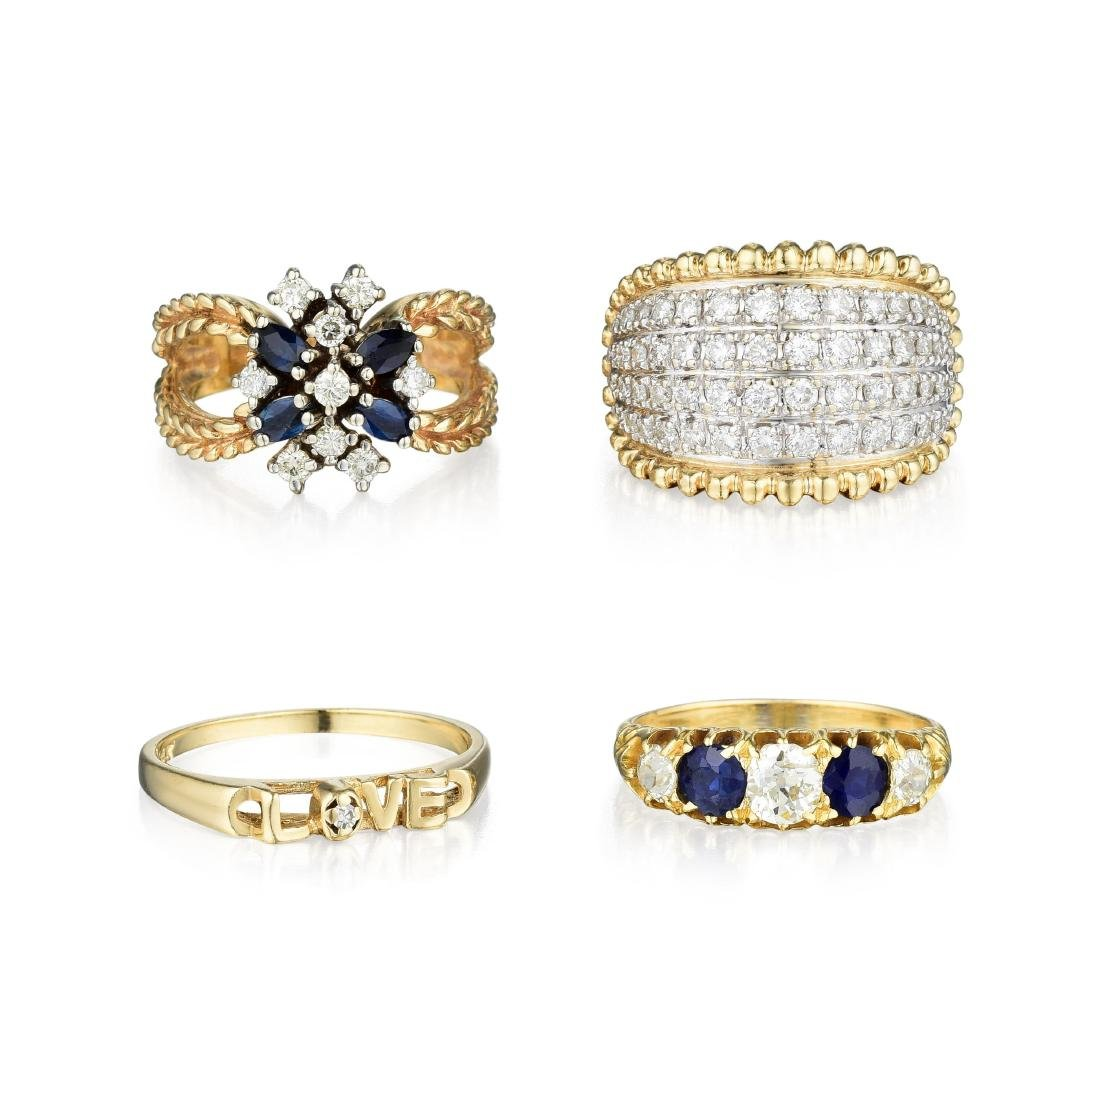 A Group of 14K Gold Diamond and Sapphire Rings